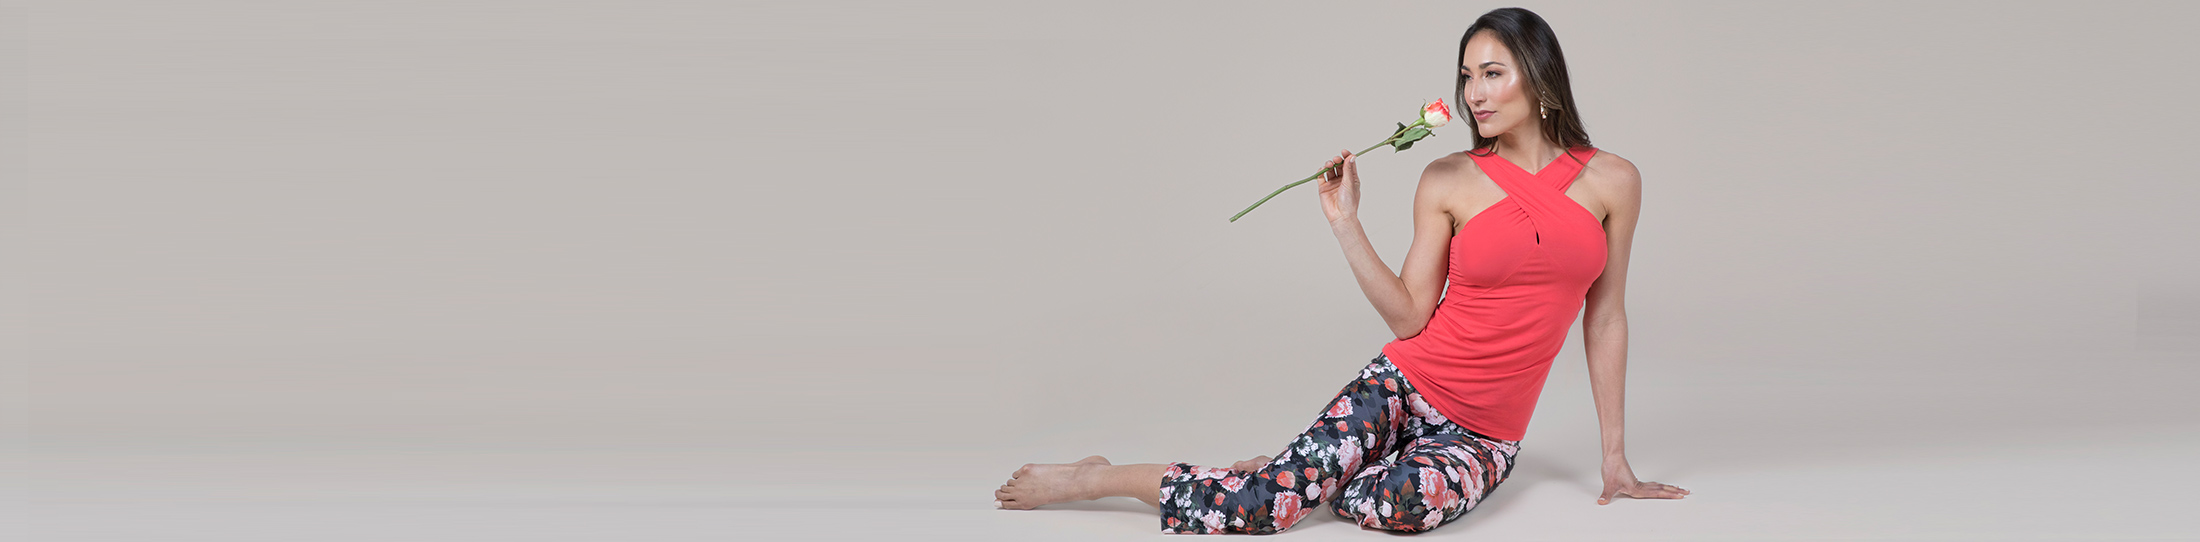 product-category-banner-vintage-floral.jpg